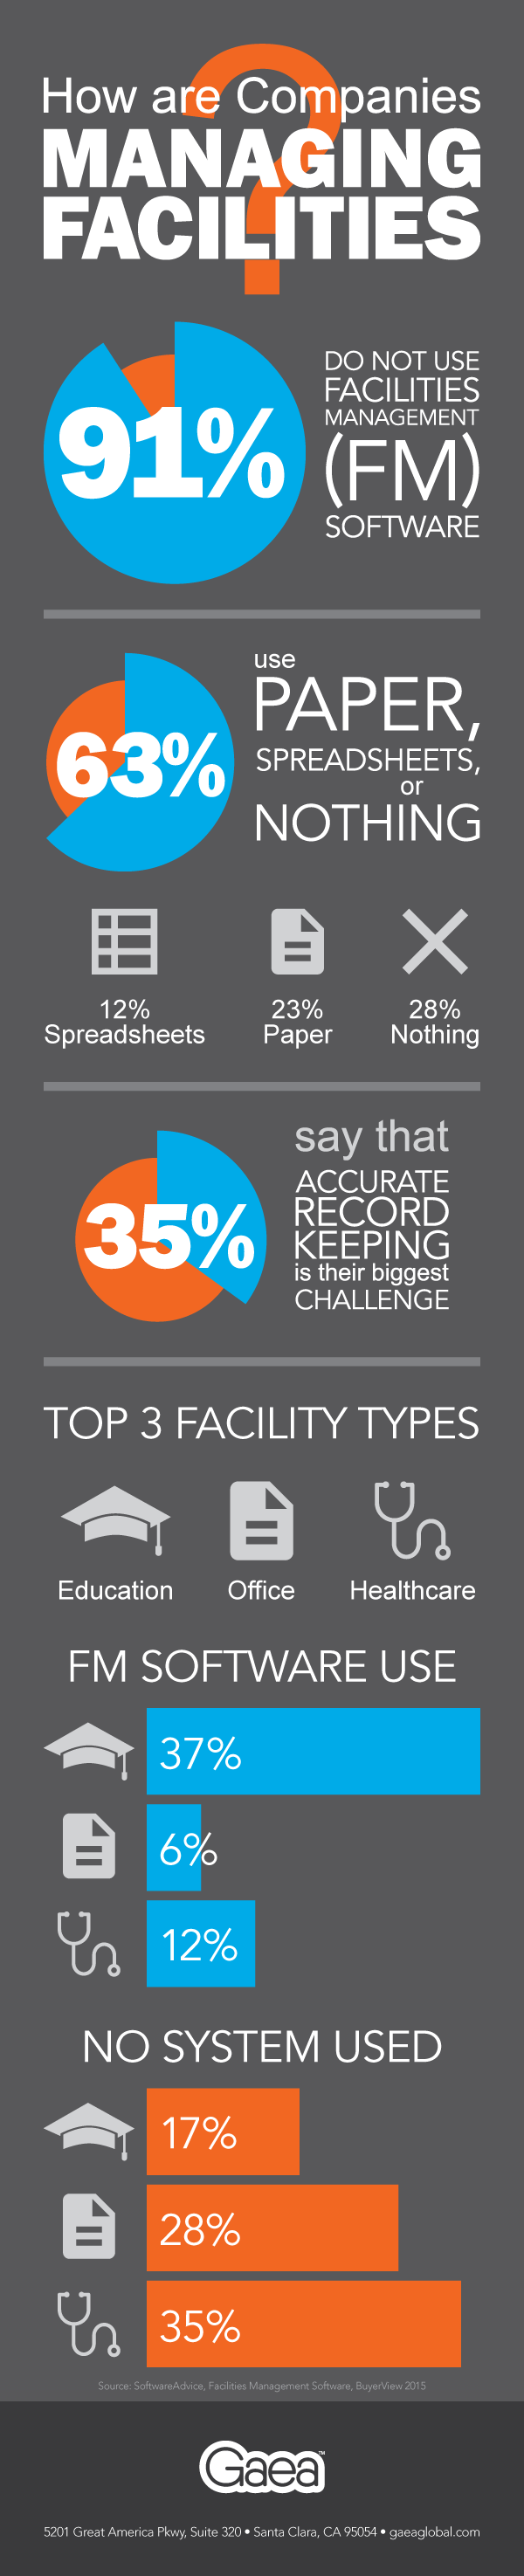 Gaea Infographic: How are Companies Managing Facilities?